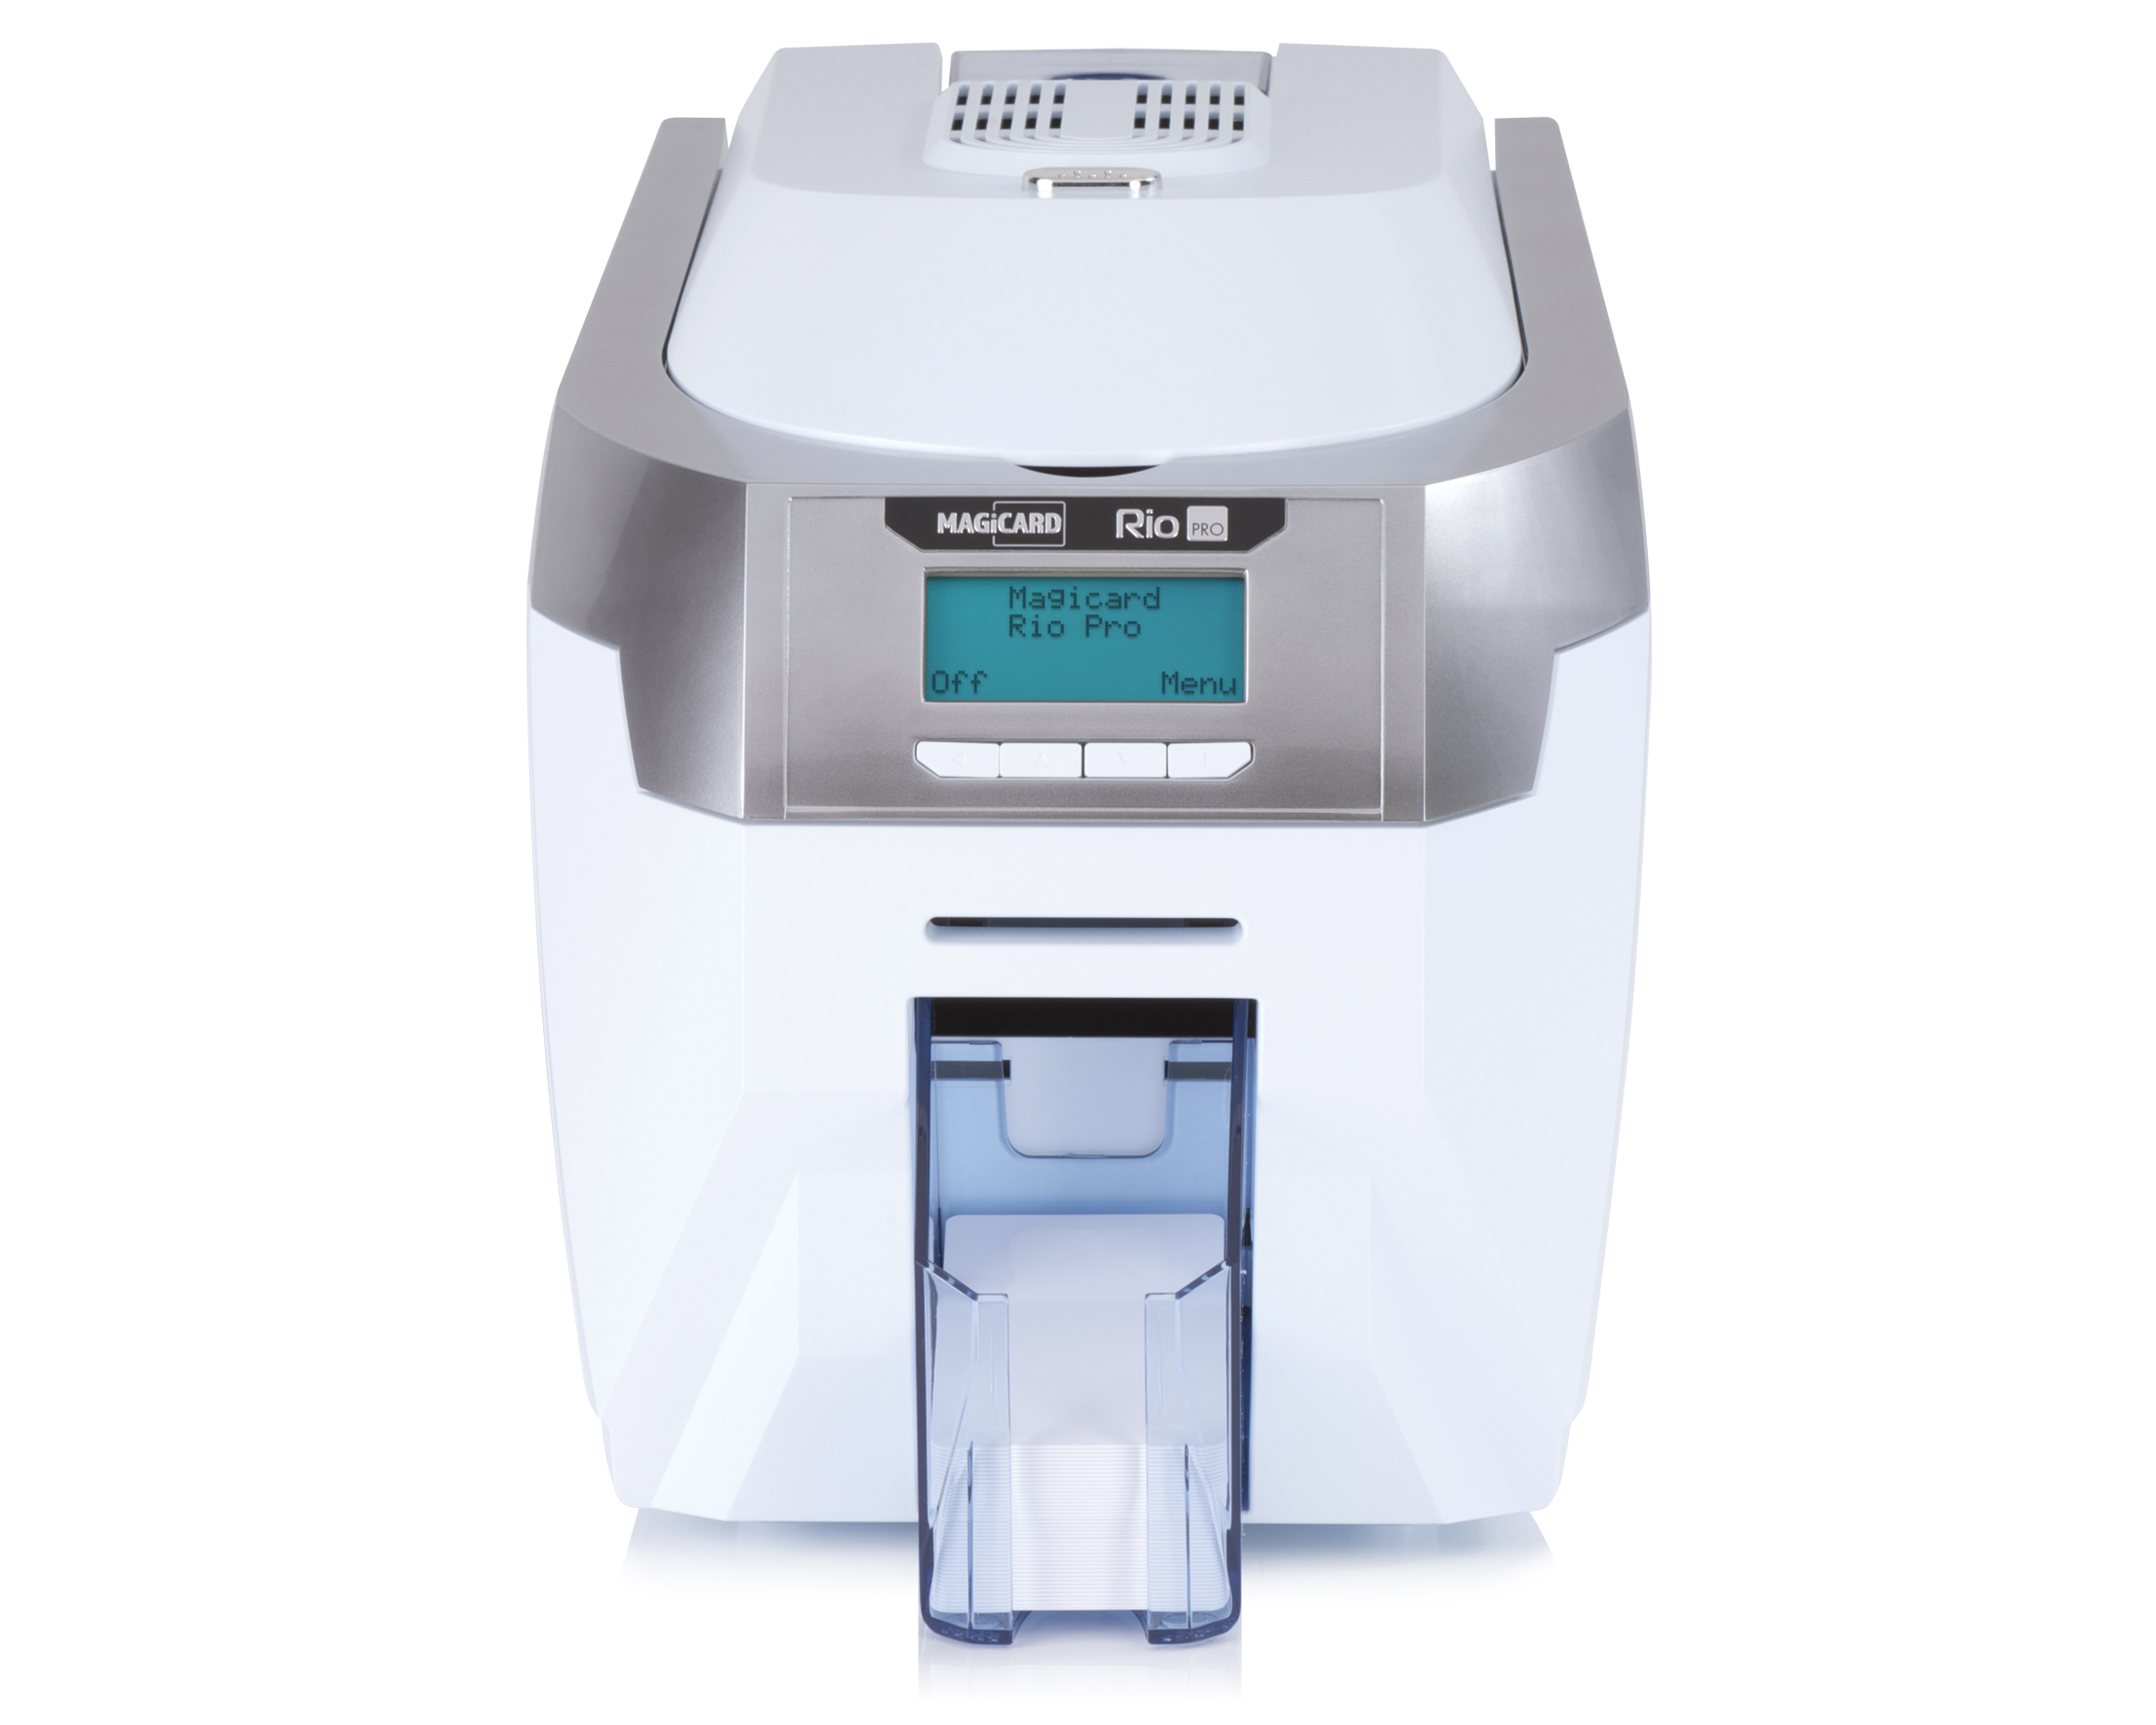 Magicard Rio Pro Card Printer with Magnetic Stripe Encoder 3652-0022 Dual Sided